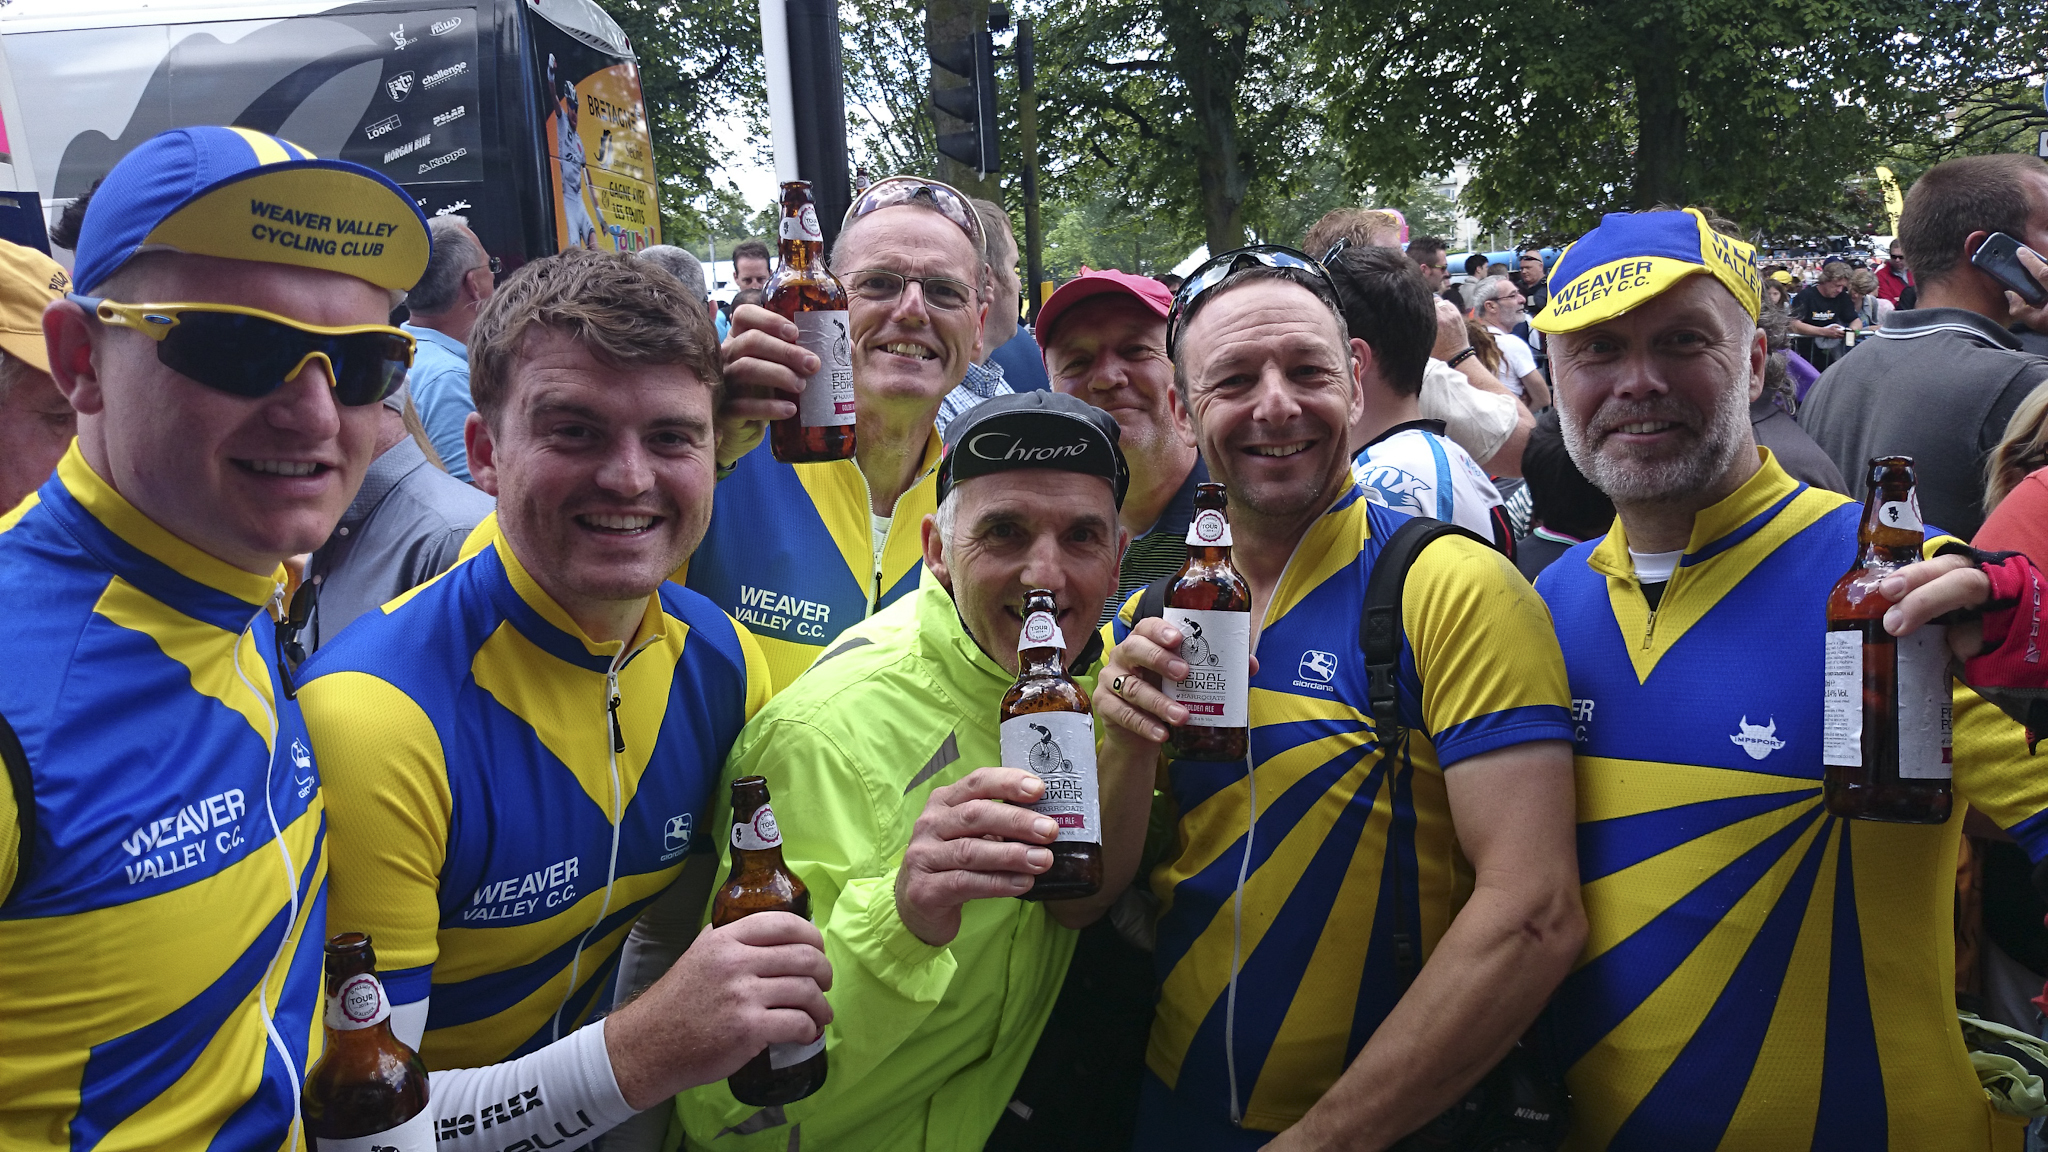 Thirsty work. Sorry Gina Bebbington, but we drank all of the Pedal Power Golden Ale, and left none for you...